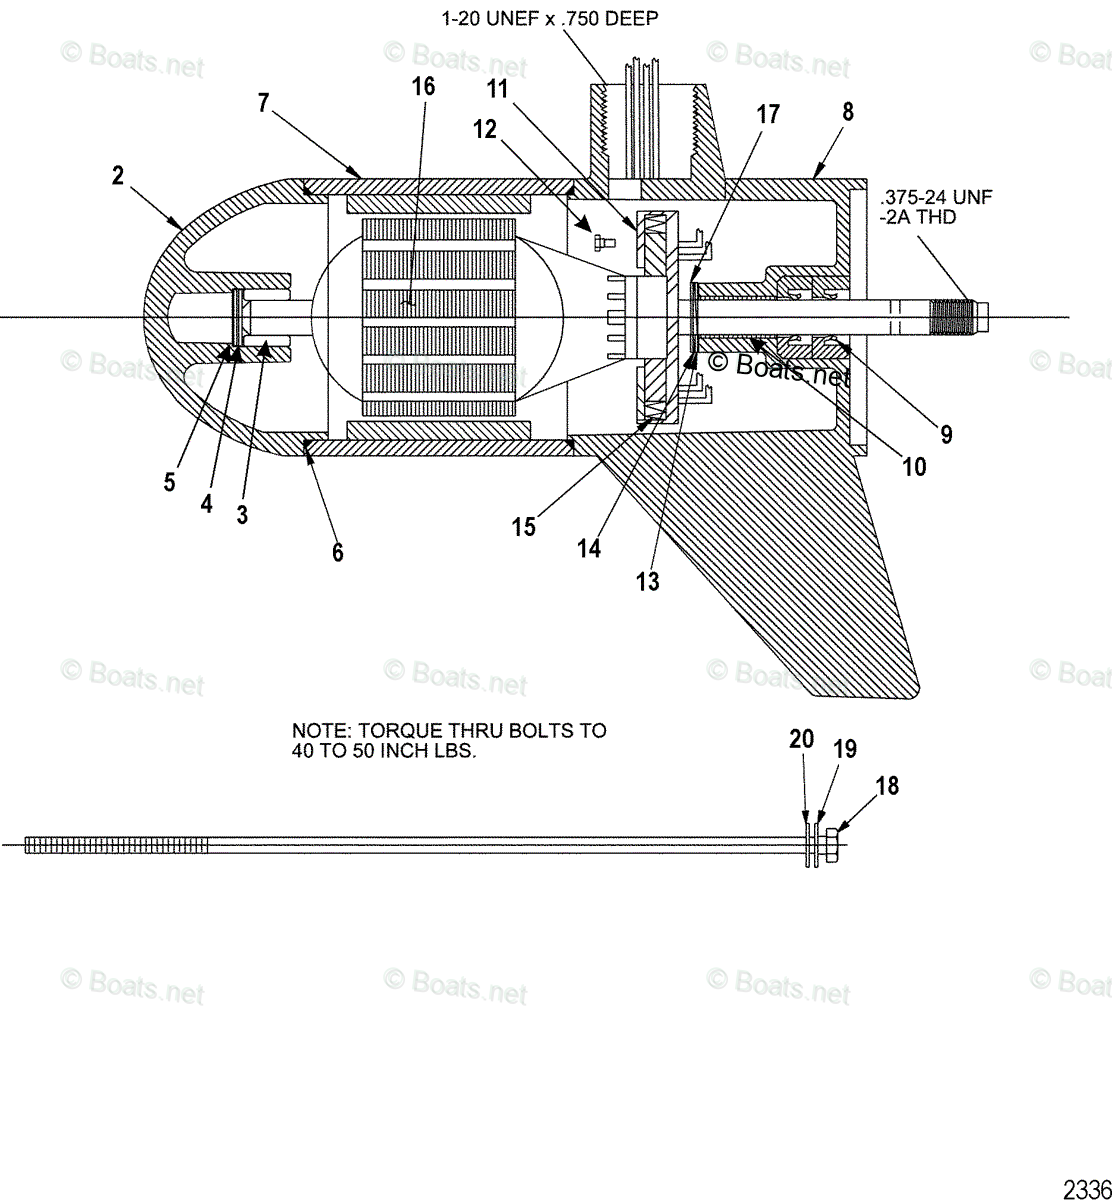 Motorguide Trolling Motor Parts Diagram